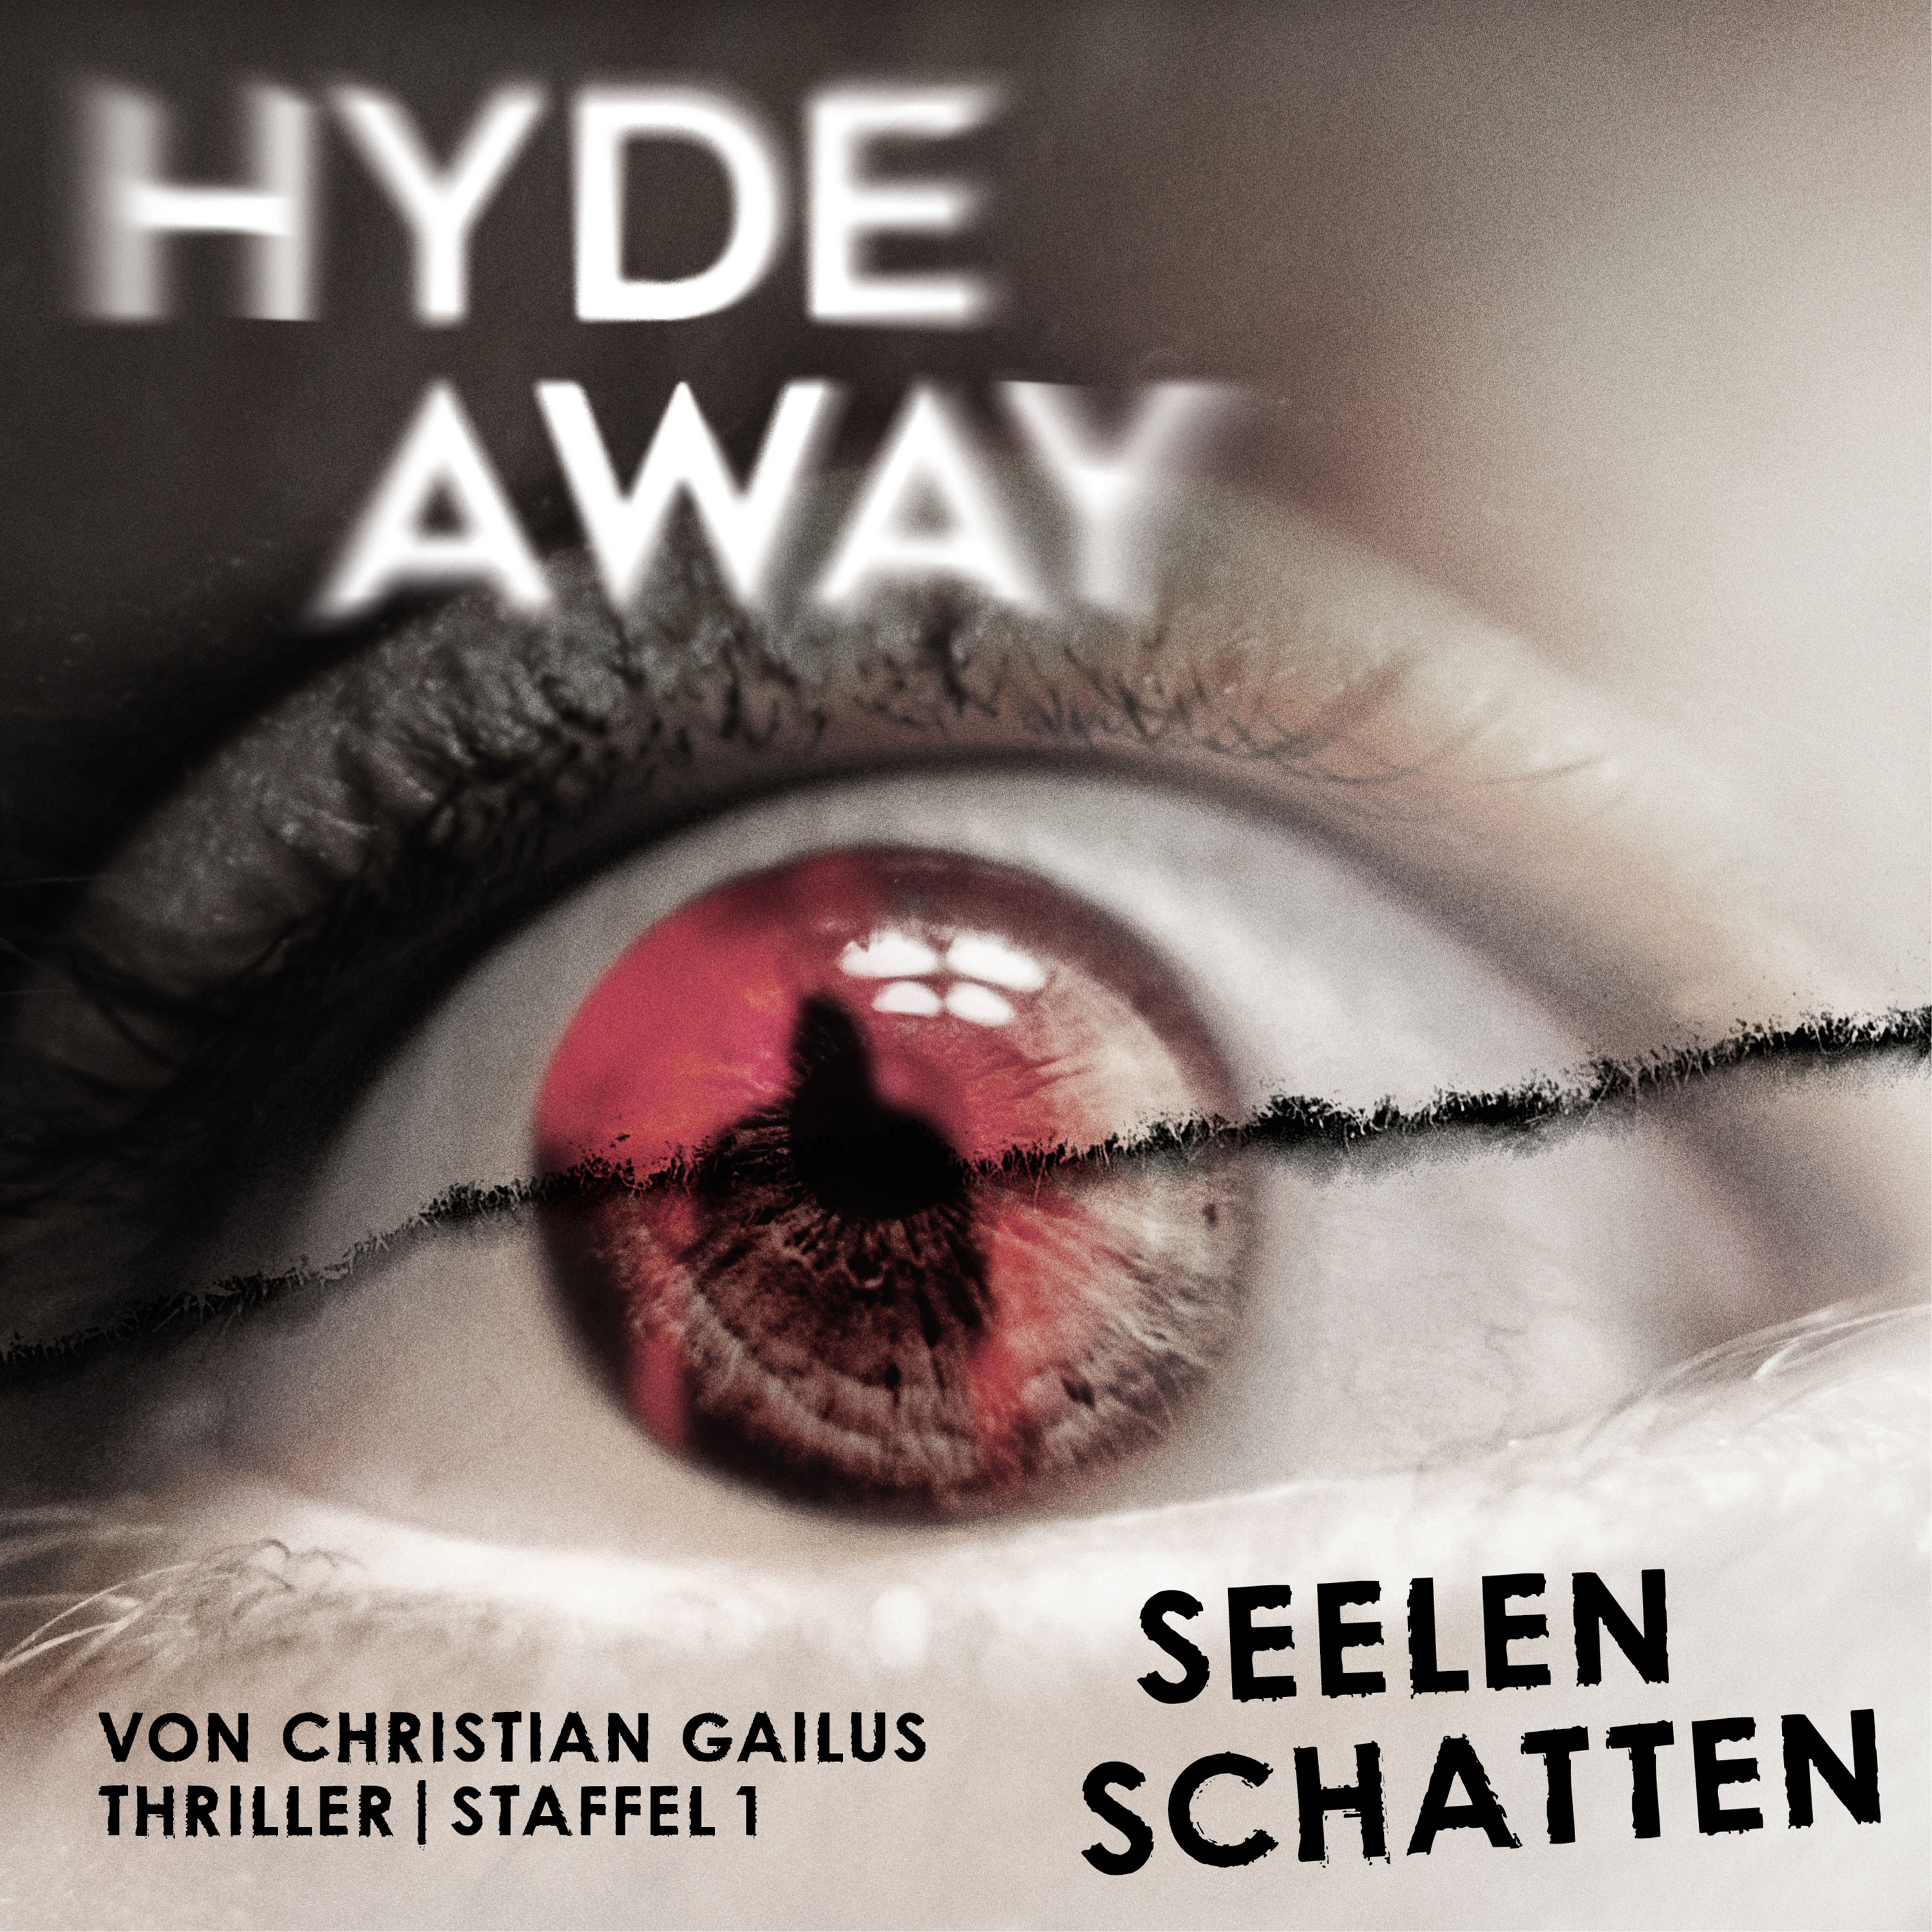 Hyde Away - Seelenschatten